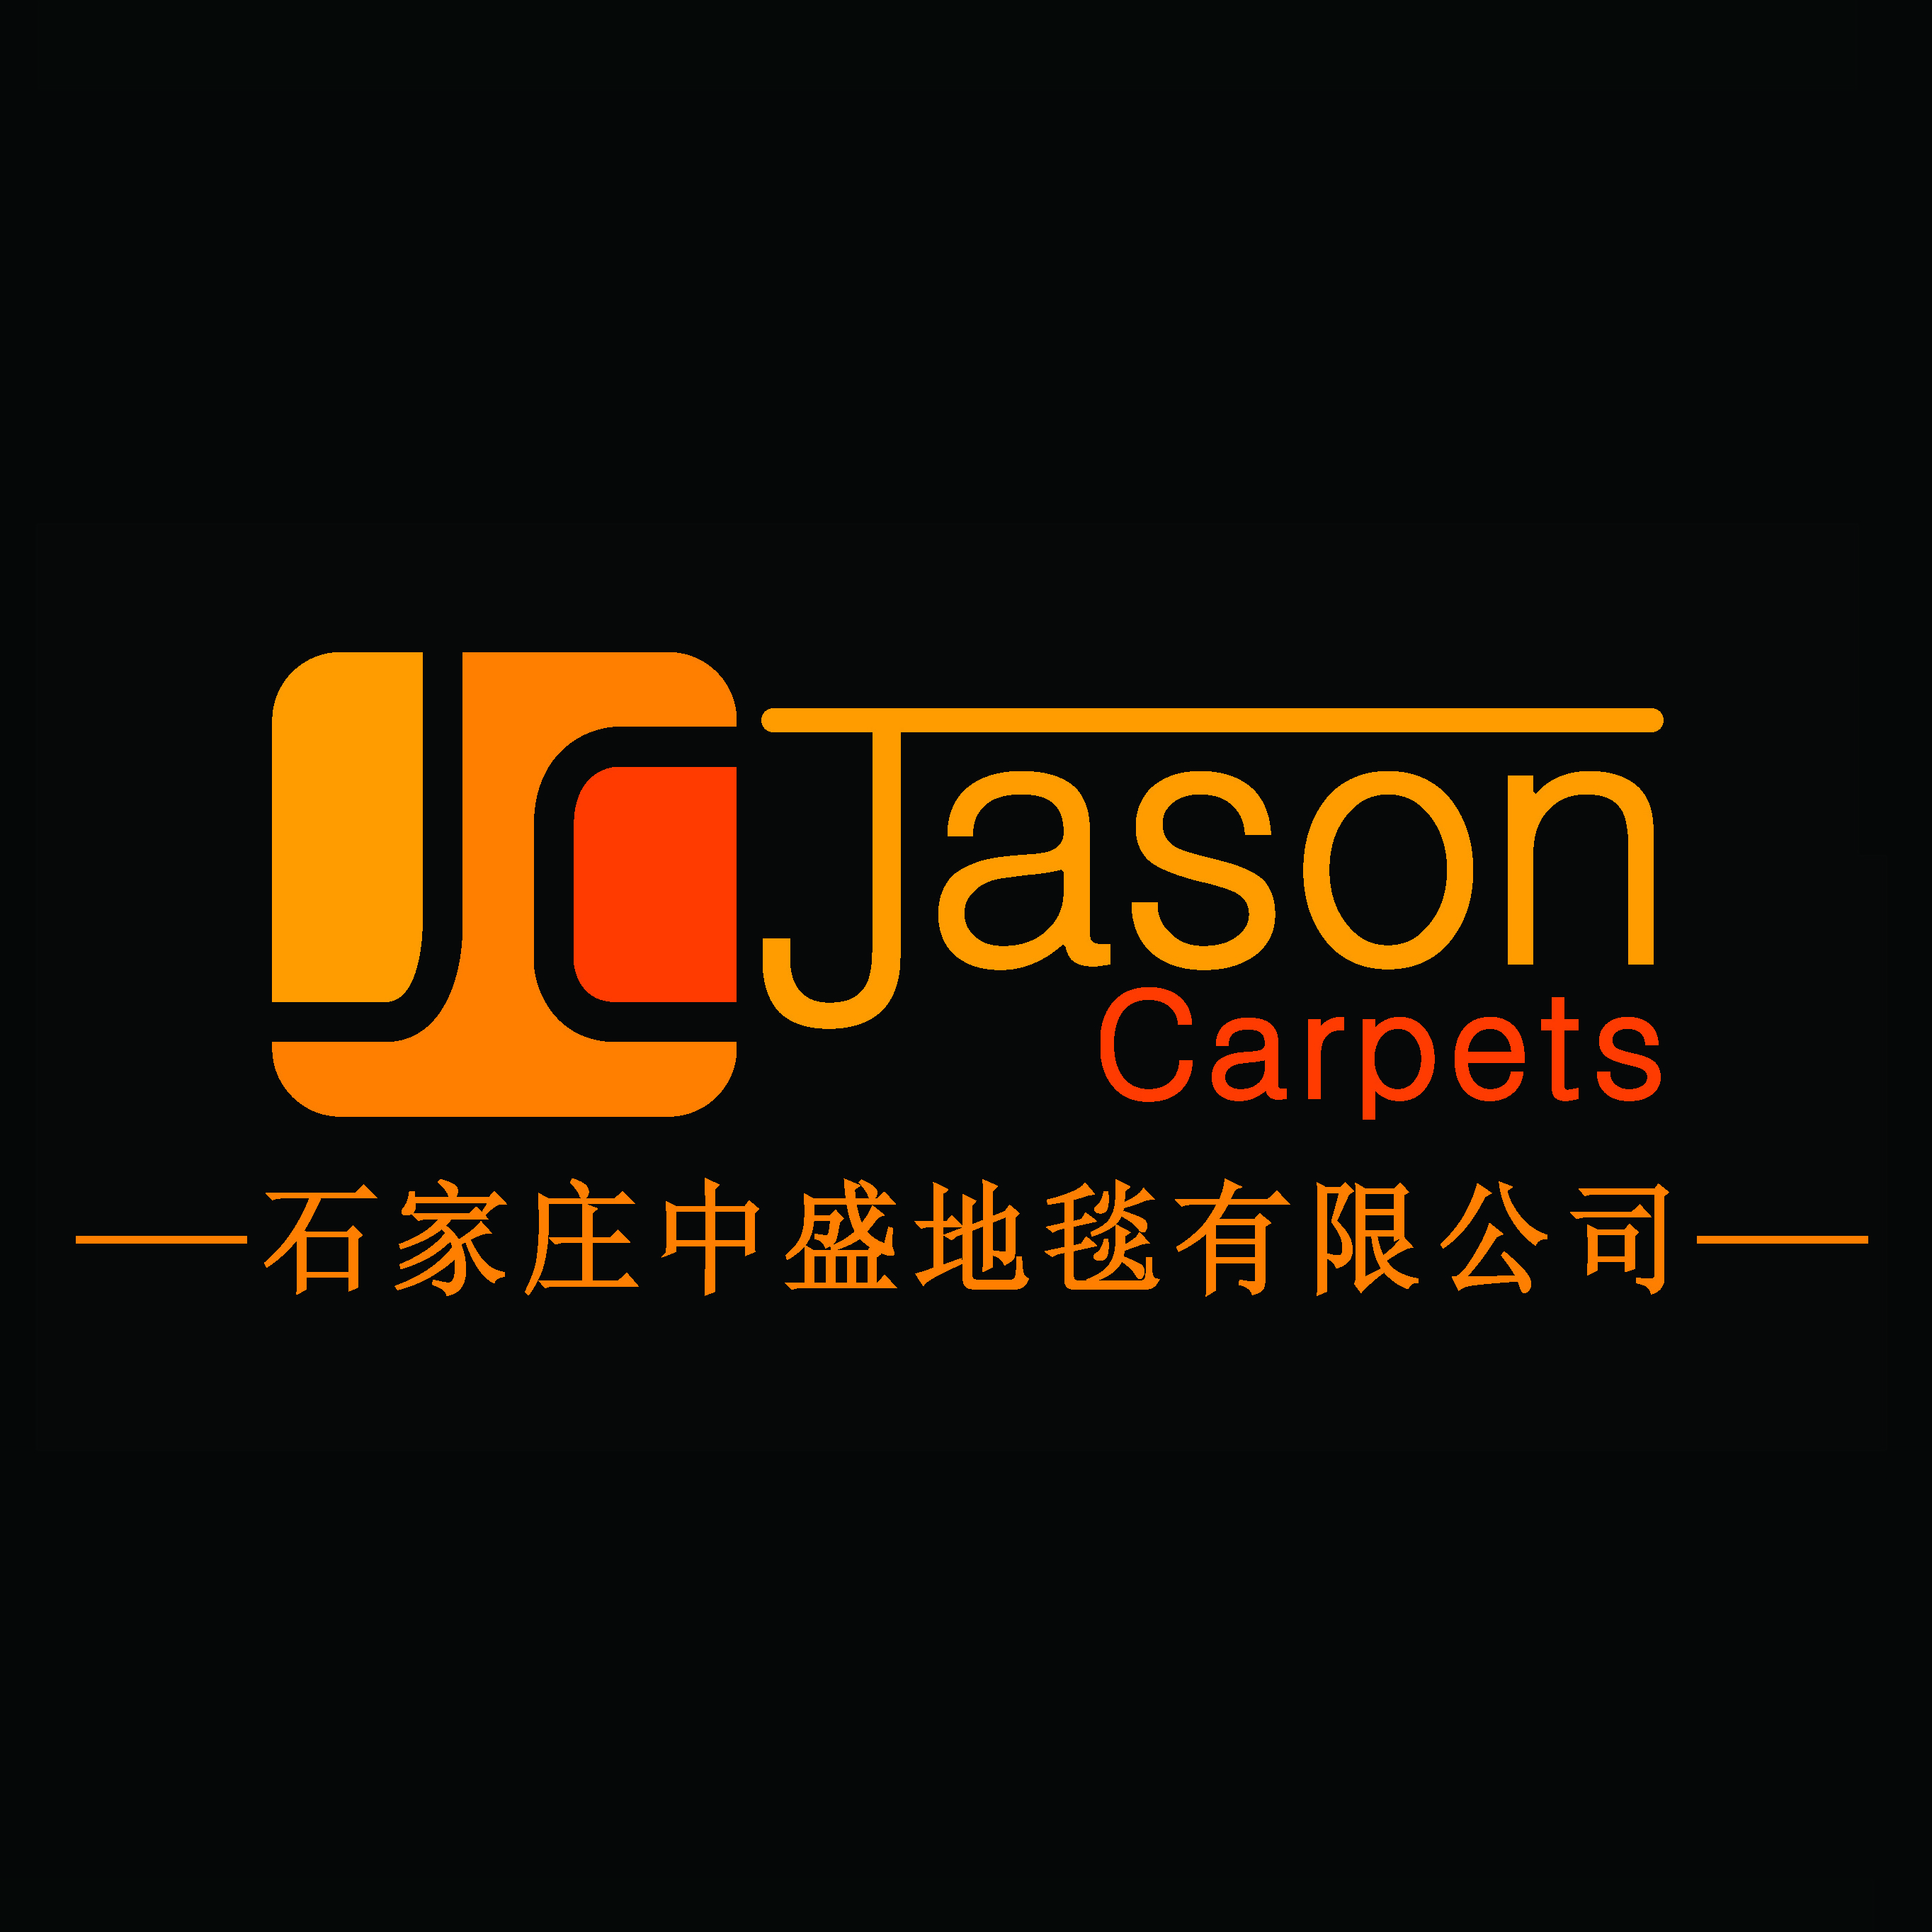 JASON CARPETS CO LTD,SHIJIAZHUANG